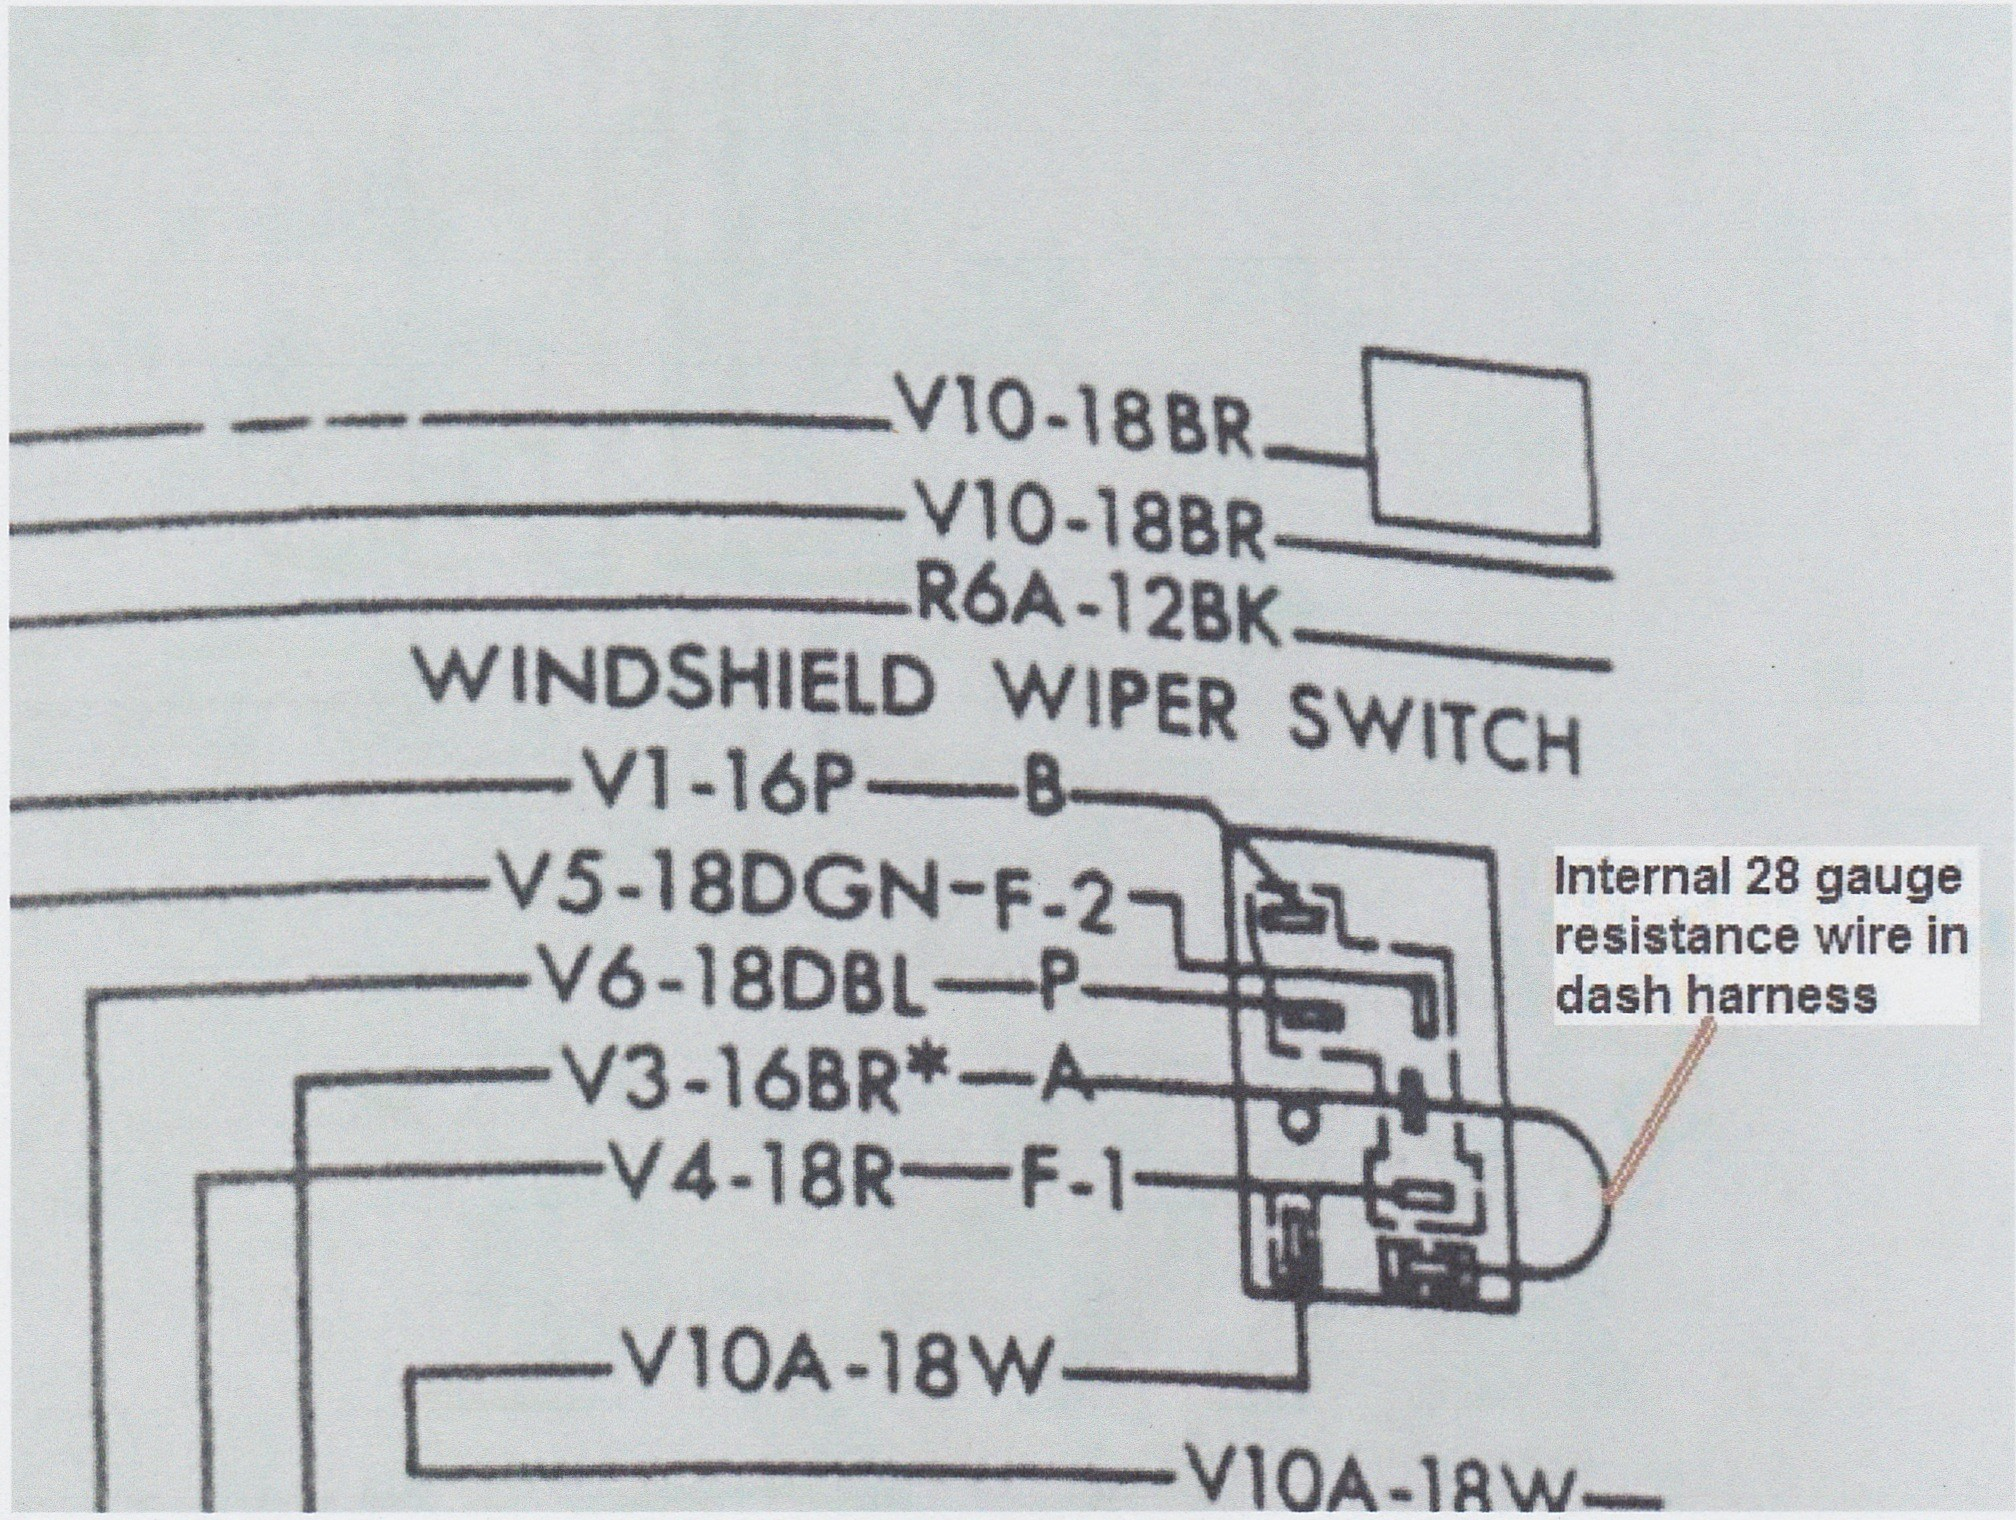 1968 fury wiring diagram technical diagrams 1968 fury wiring diagram technical